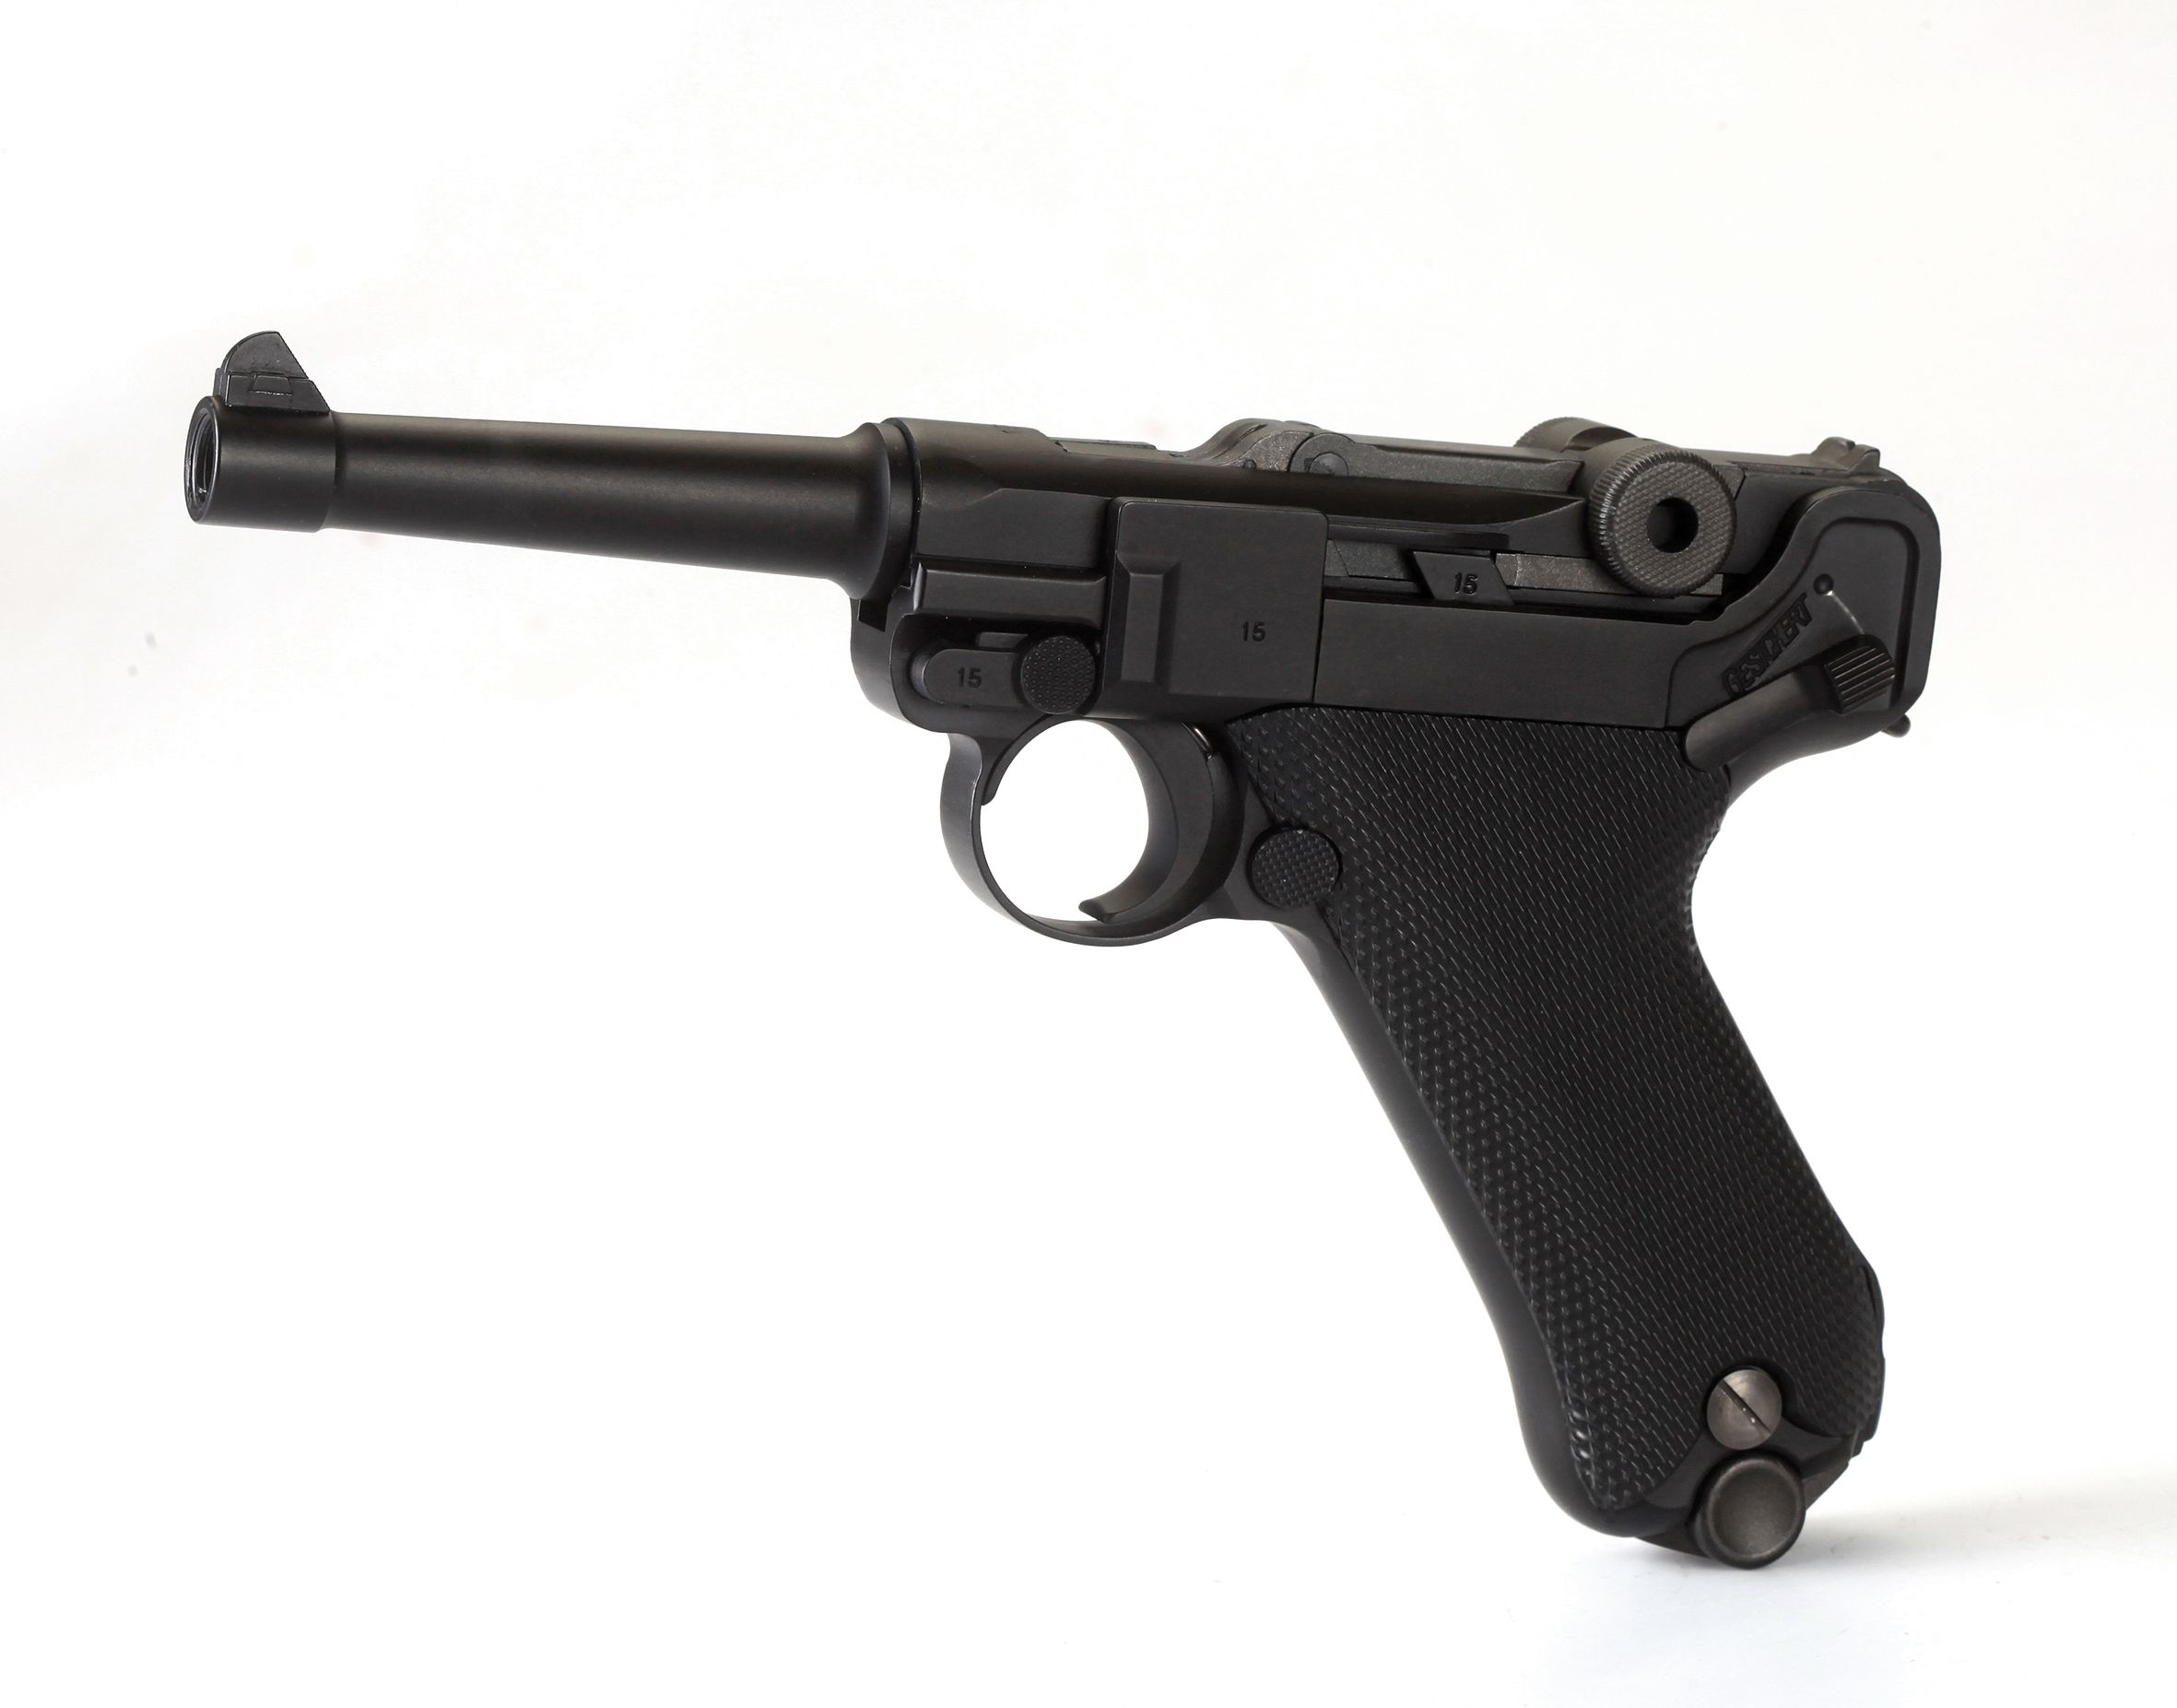 Pistola P08 BLOW BACK CO2 4.5 FULL METAL KMB-41DHN